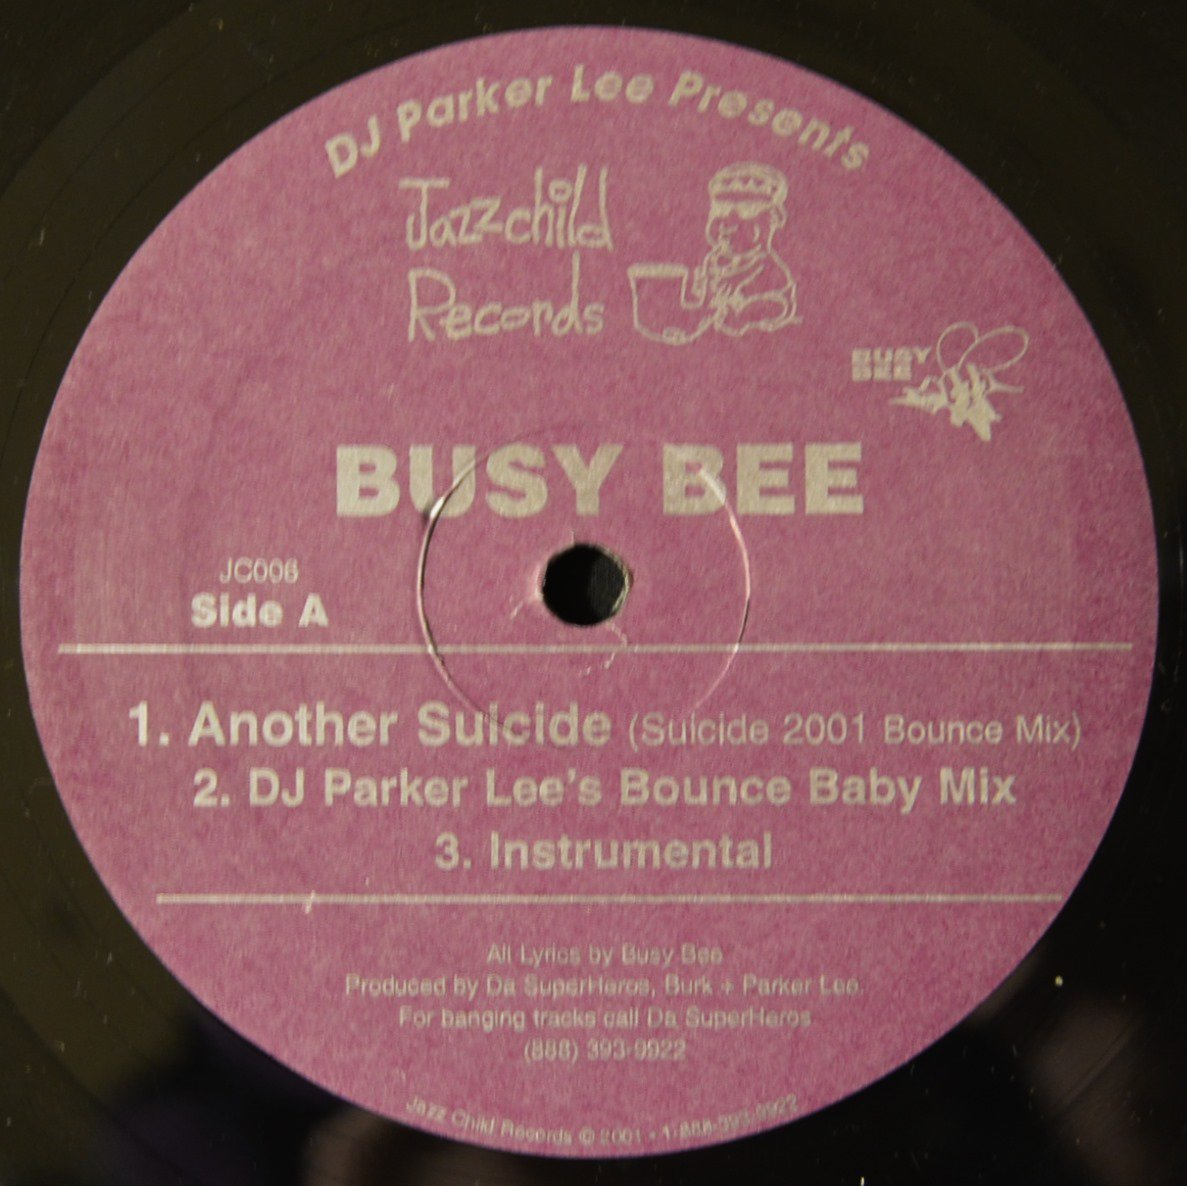 BUSY BEE / ANOTHER SUICIDE (12